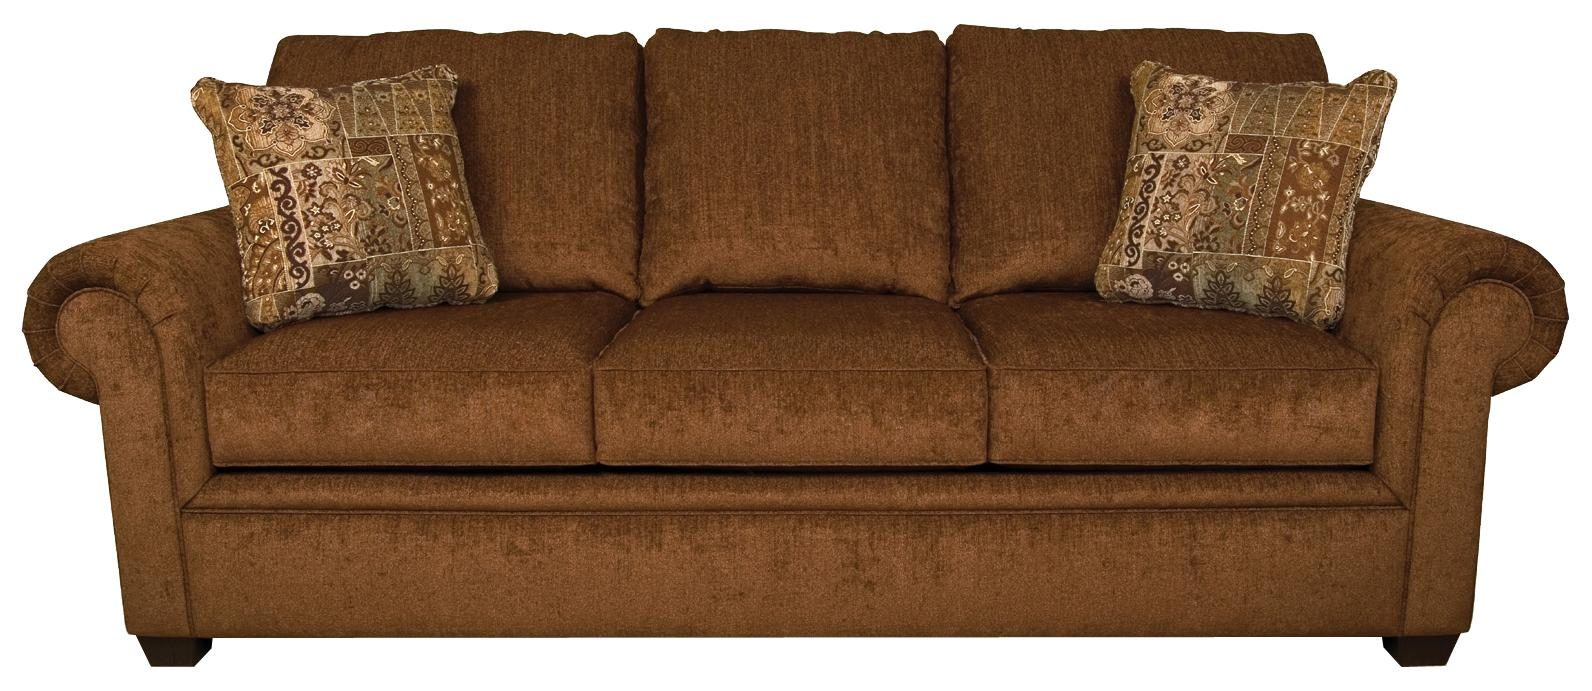 England Brett Rolled Arm Sofa - Item Number: 2255